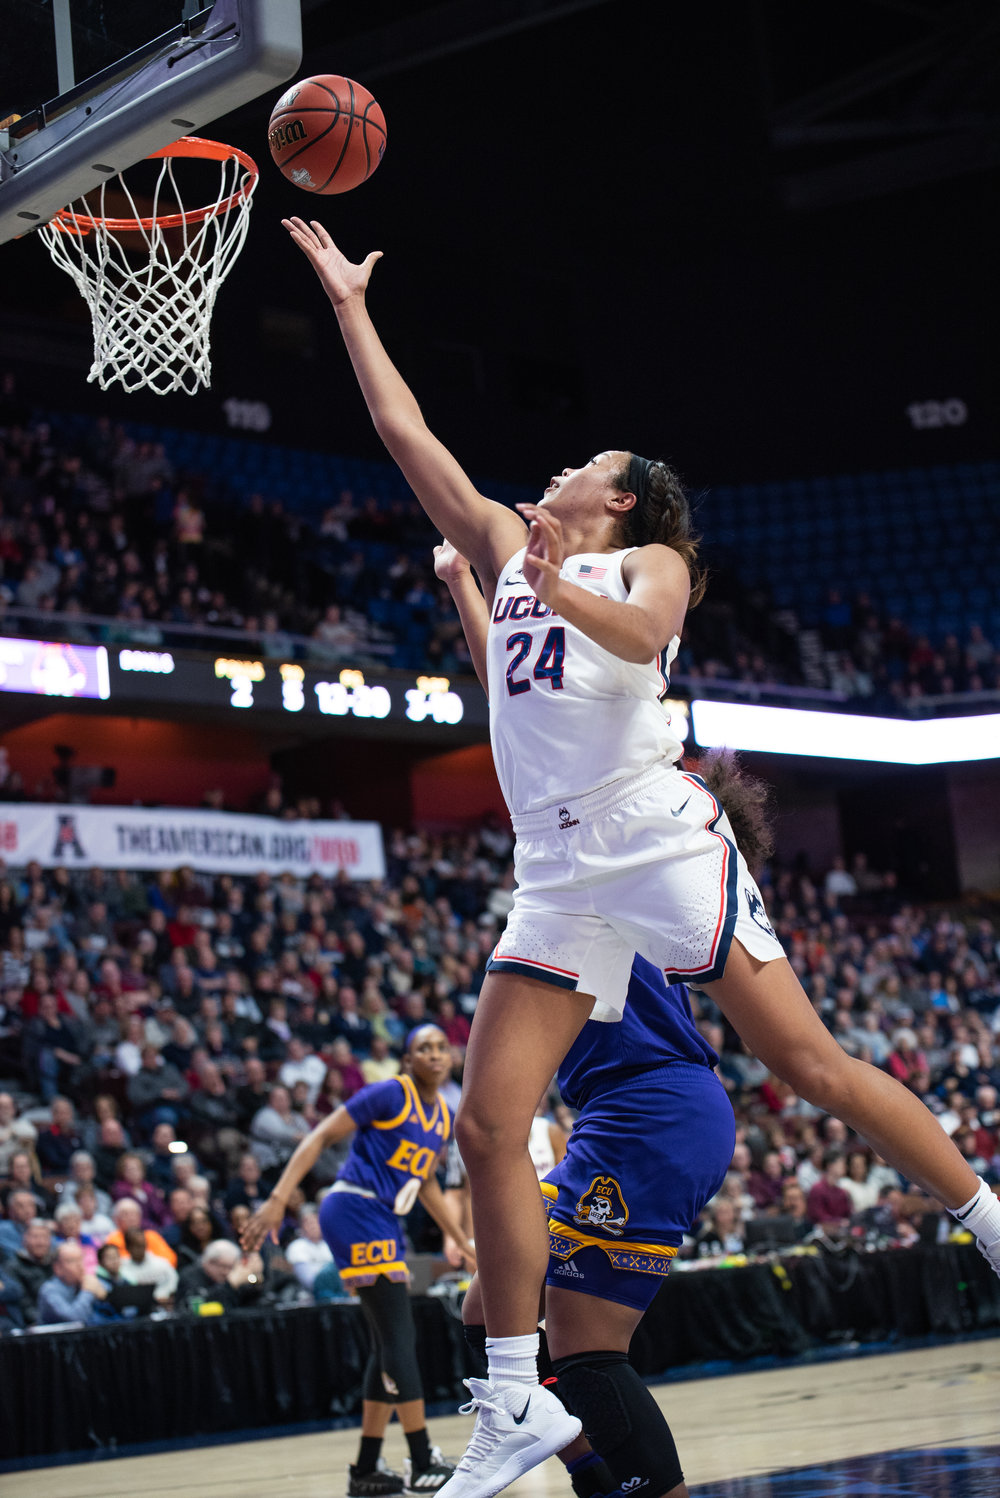 Napheesa Collier nearly dropped 40 points on ECU as UConn rolls past the Pirates 92-65. Photo by Charlotte Lao/The Daily Campus